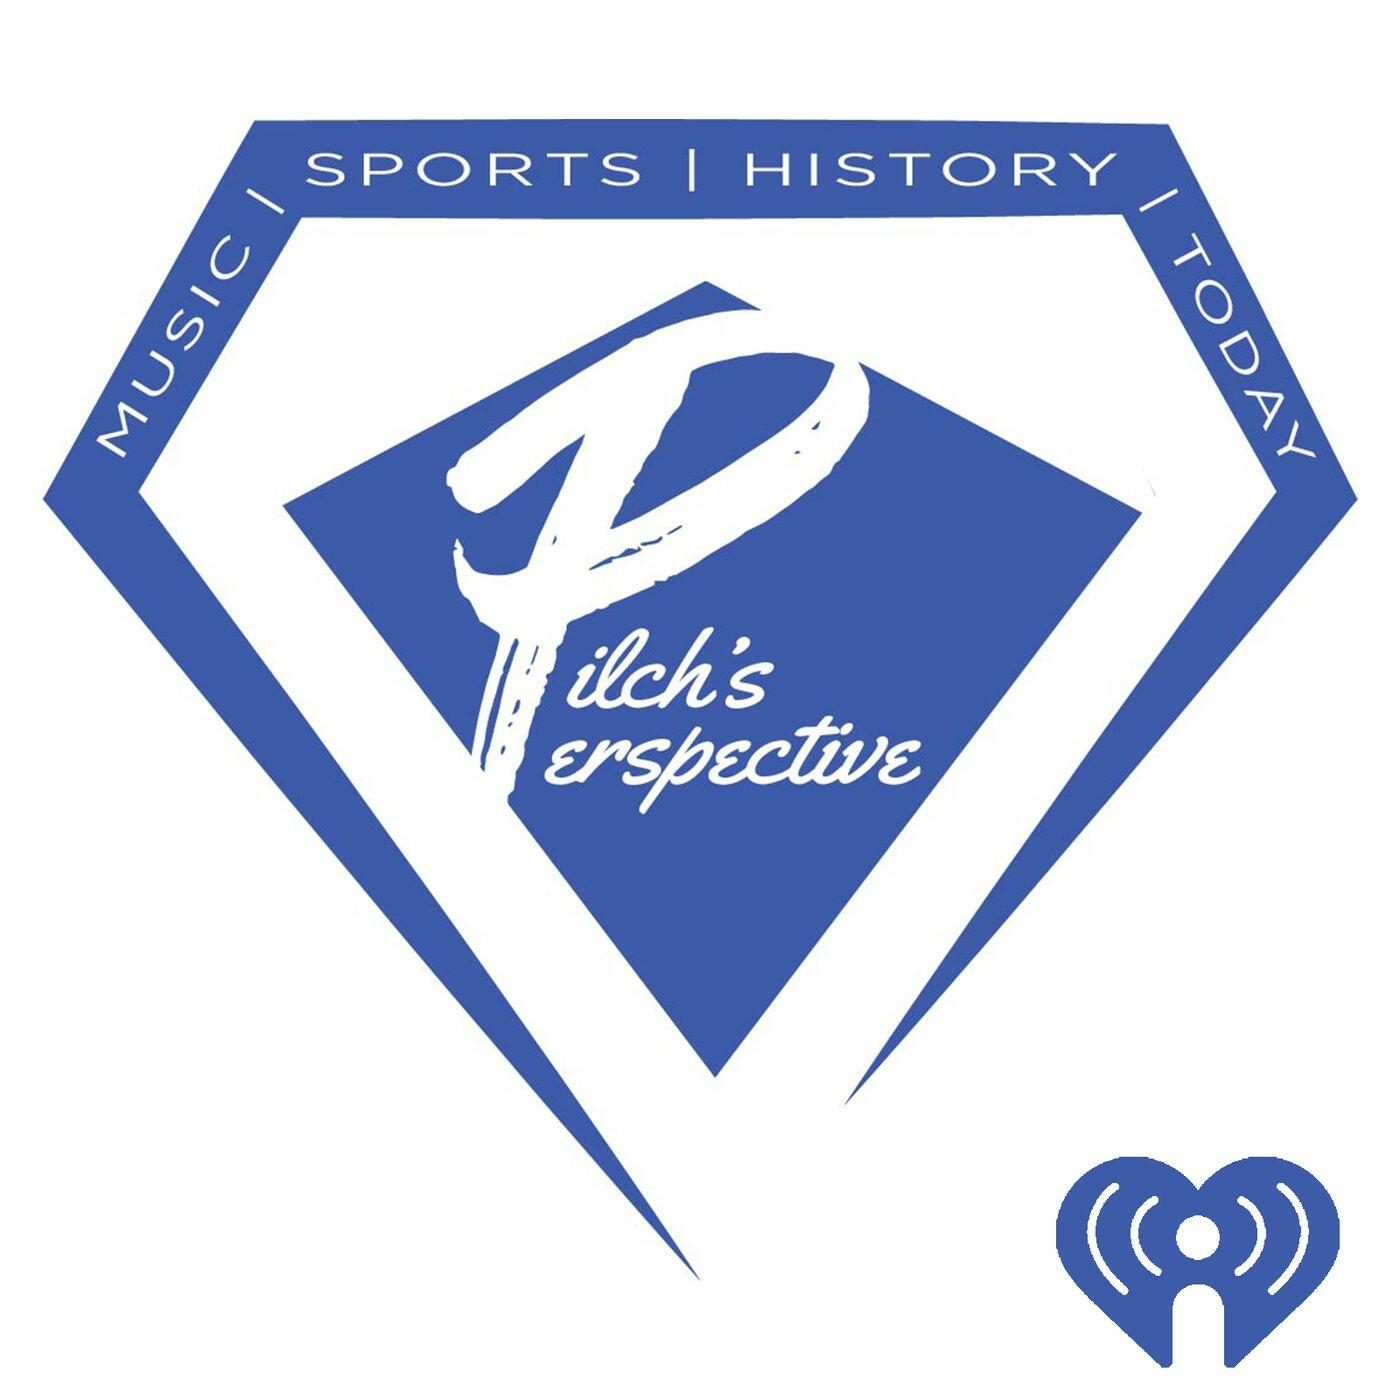 Listen to the Pilch's Perspective Episode - Perceptions and Realities of Babe Ruth and Ty Cobb on iHeartRadio   iHeartRadio